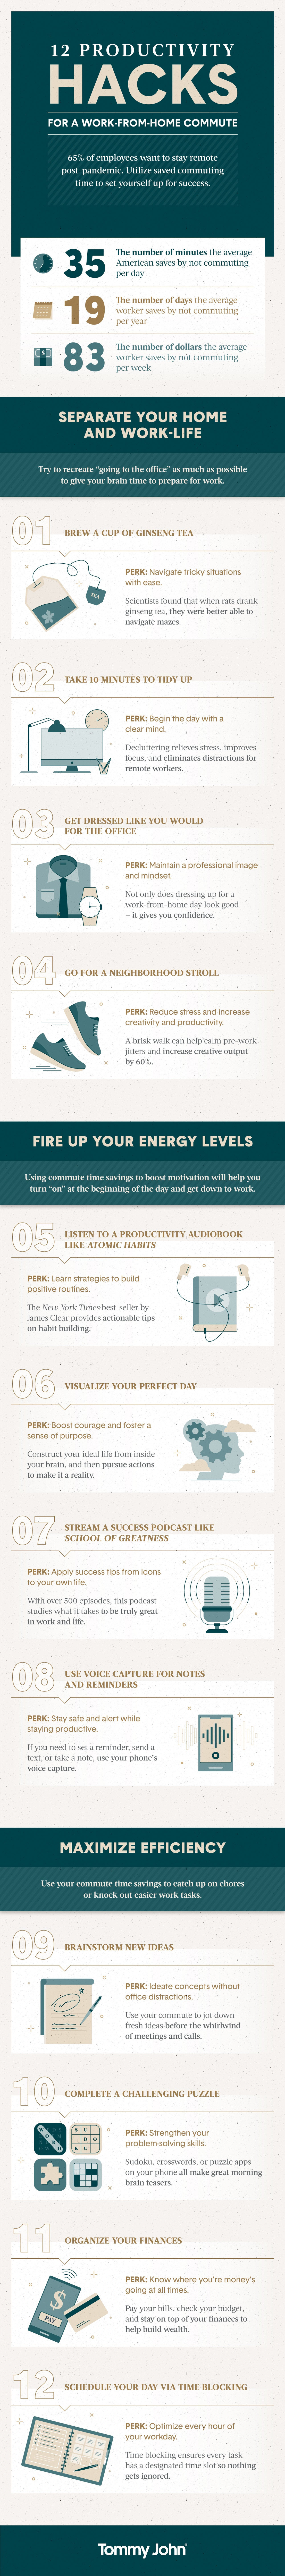 Improve Your Work-from-Home Productivity